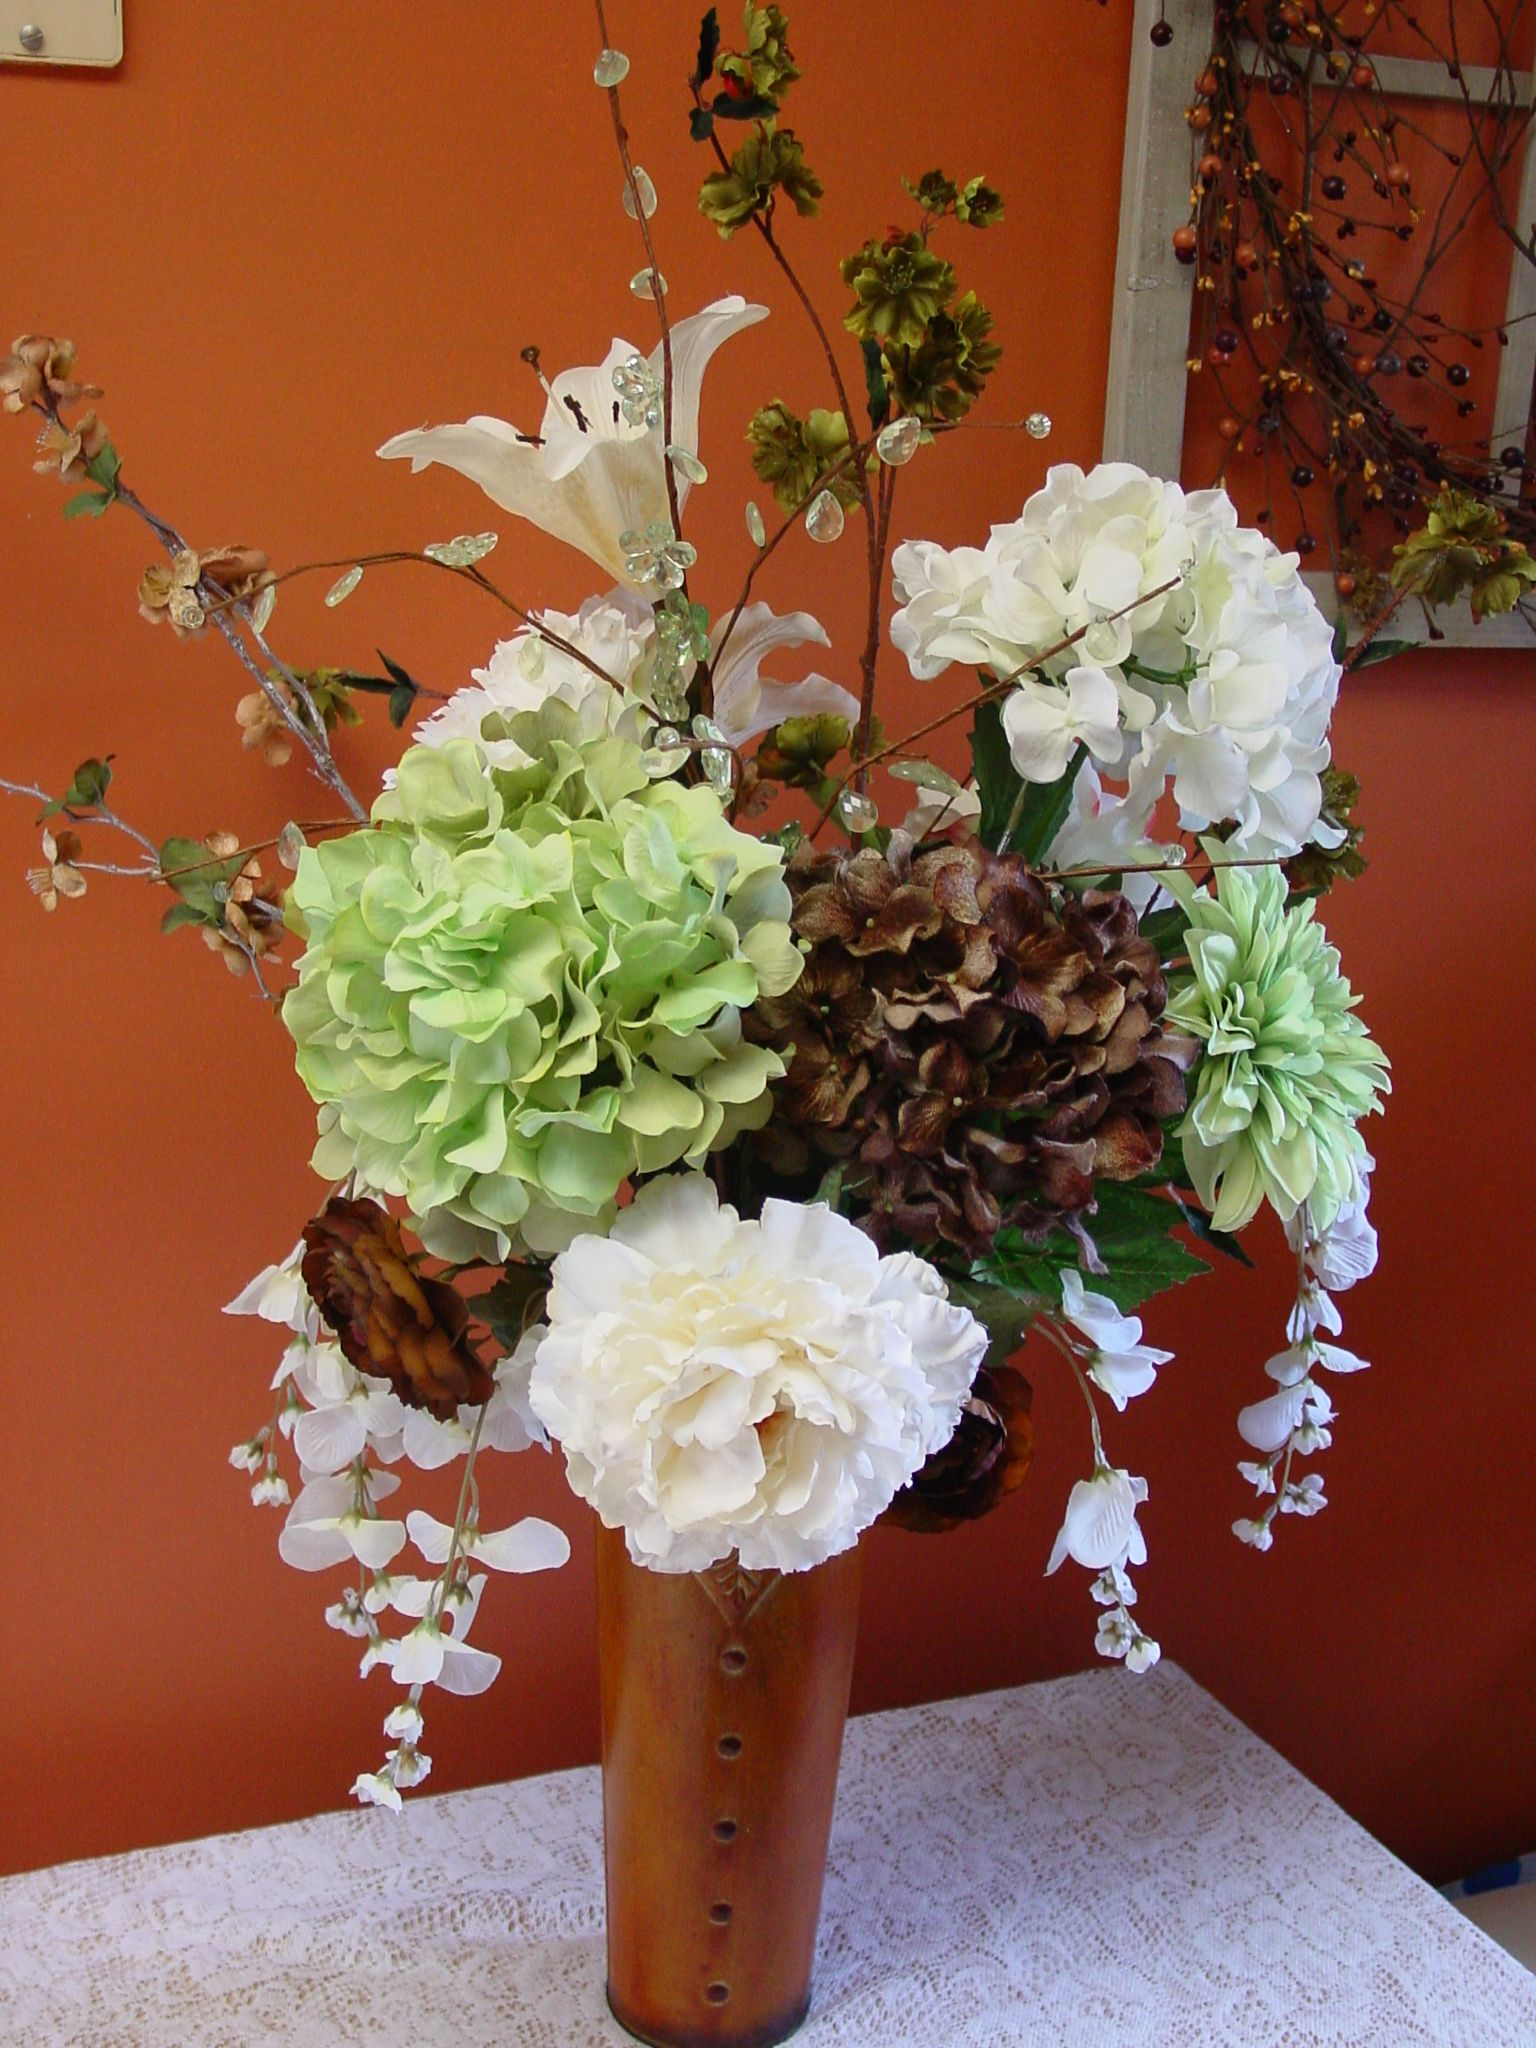 Simple country rustic elegant centerpiece with a couple glass